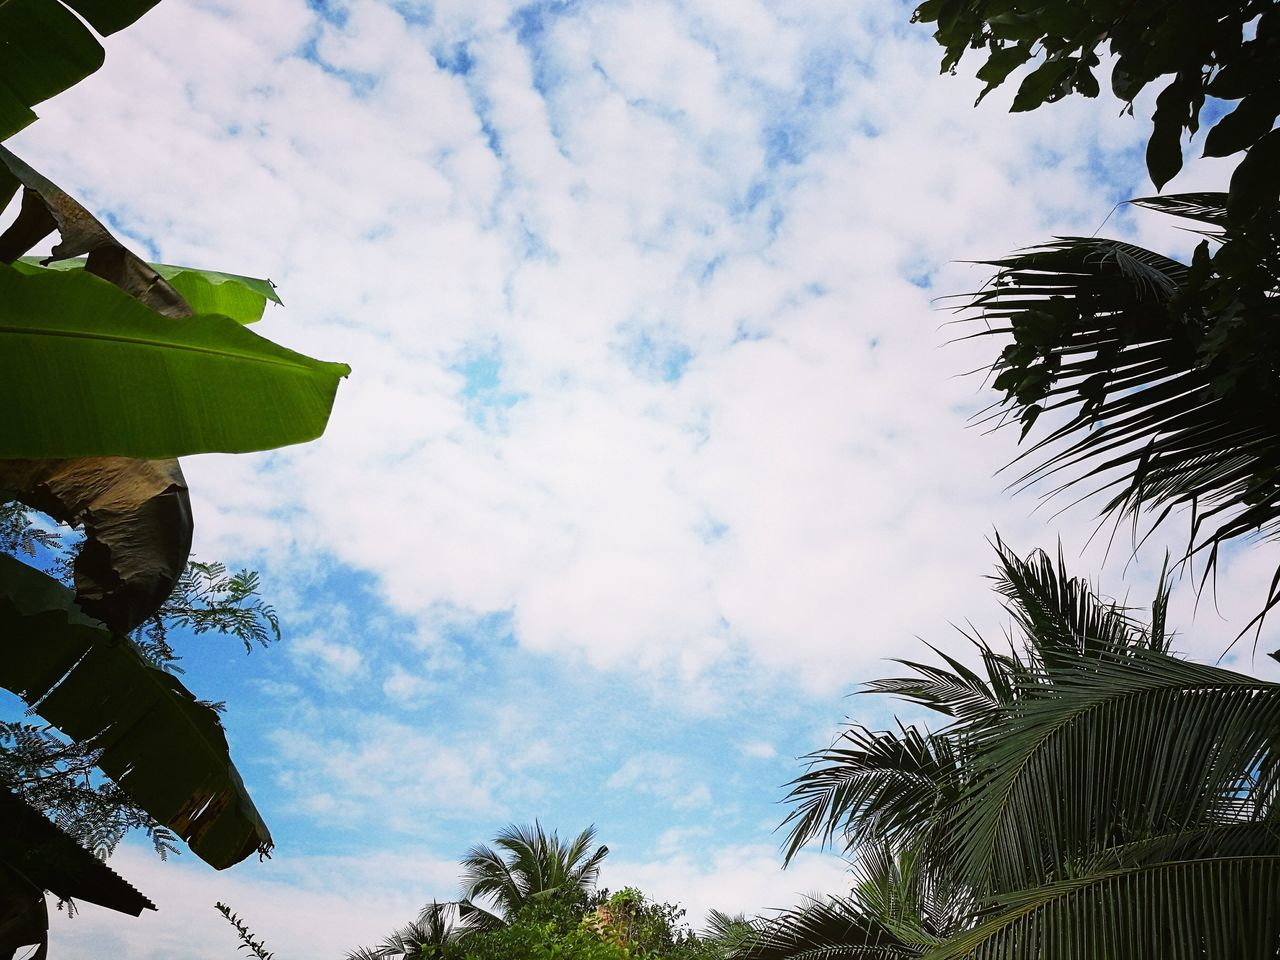 low angle view, cloud - sky, sky, tree, leaf, day, outdoors, no people, hanging, nature, growth, palm tree, branch, beauty in nature, freshness